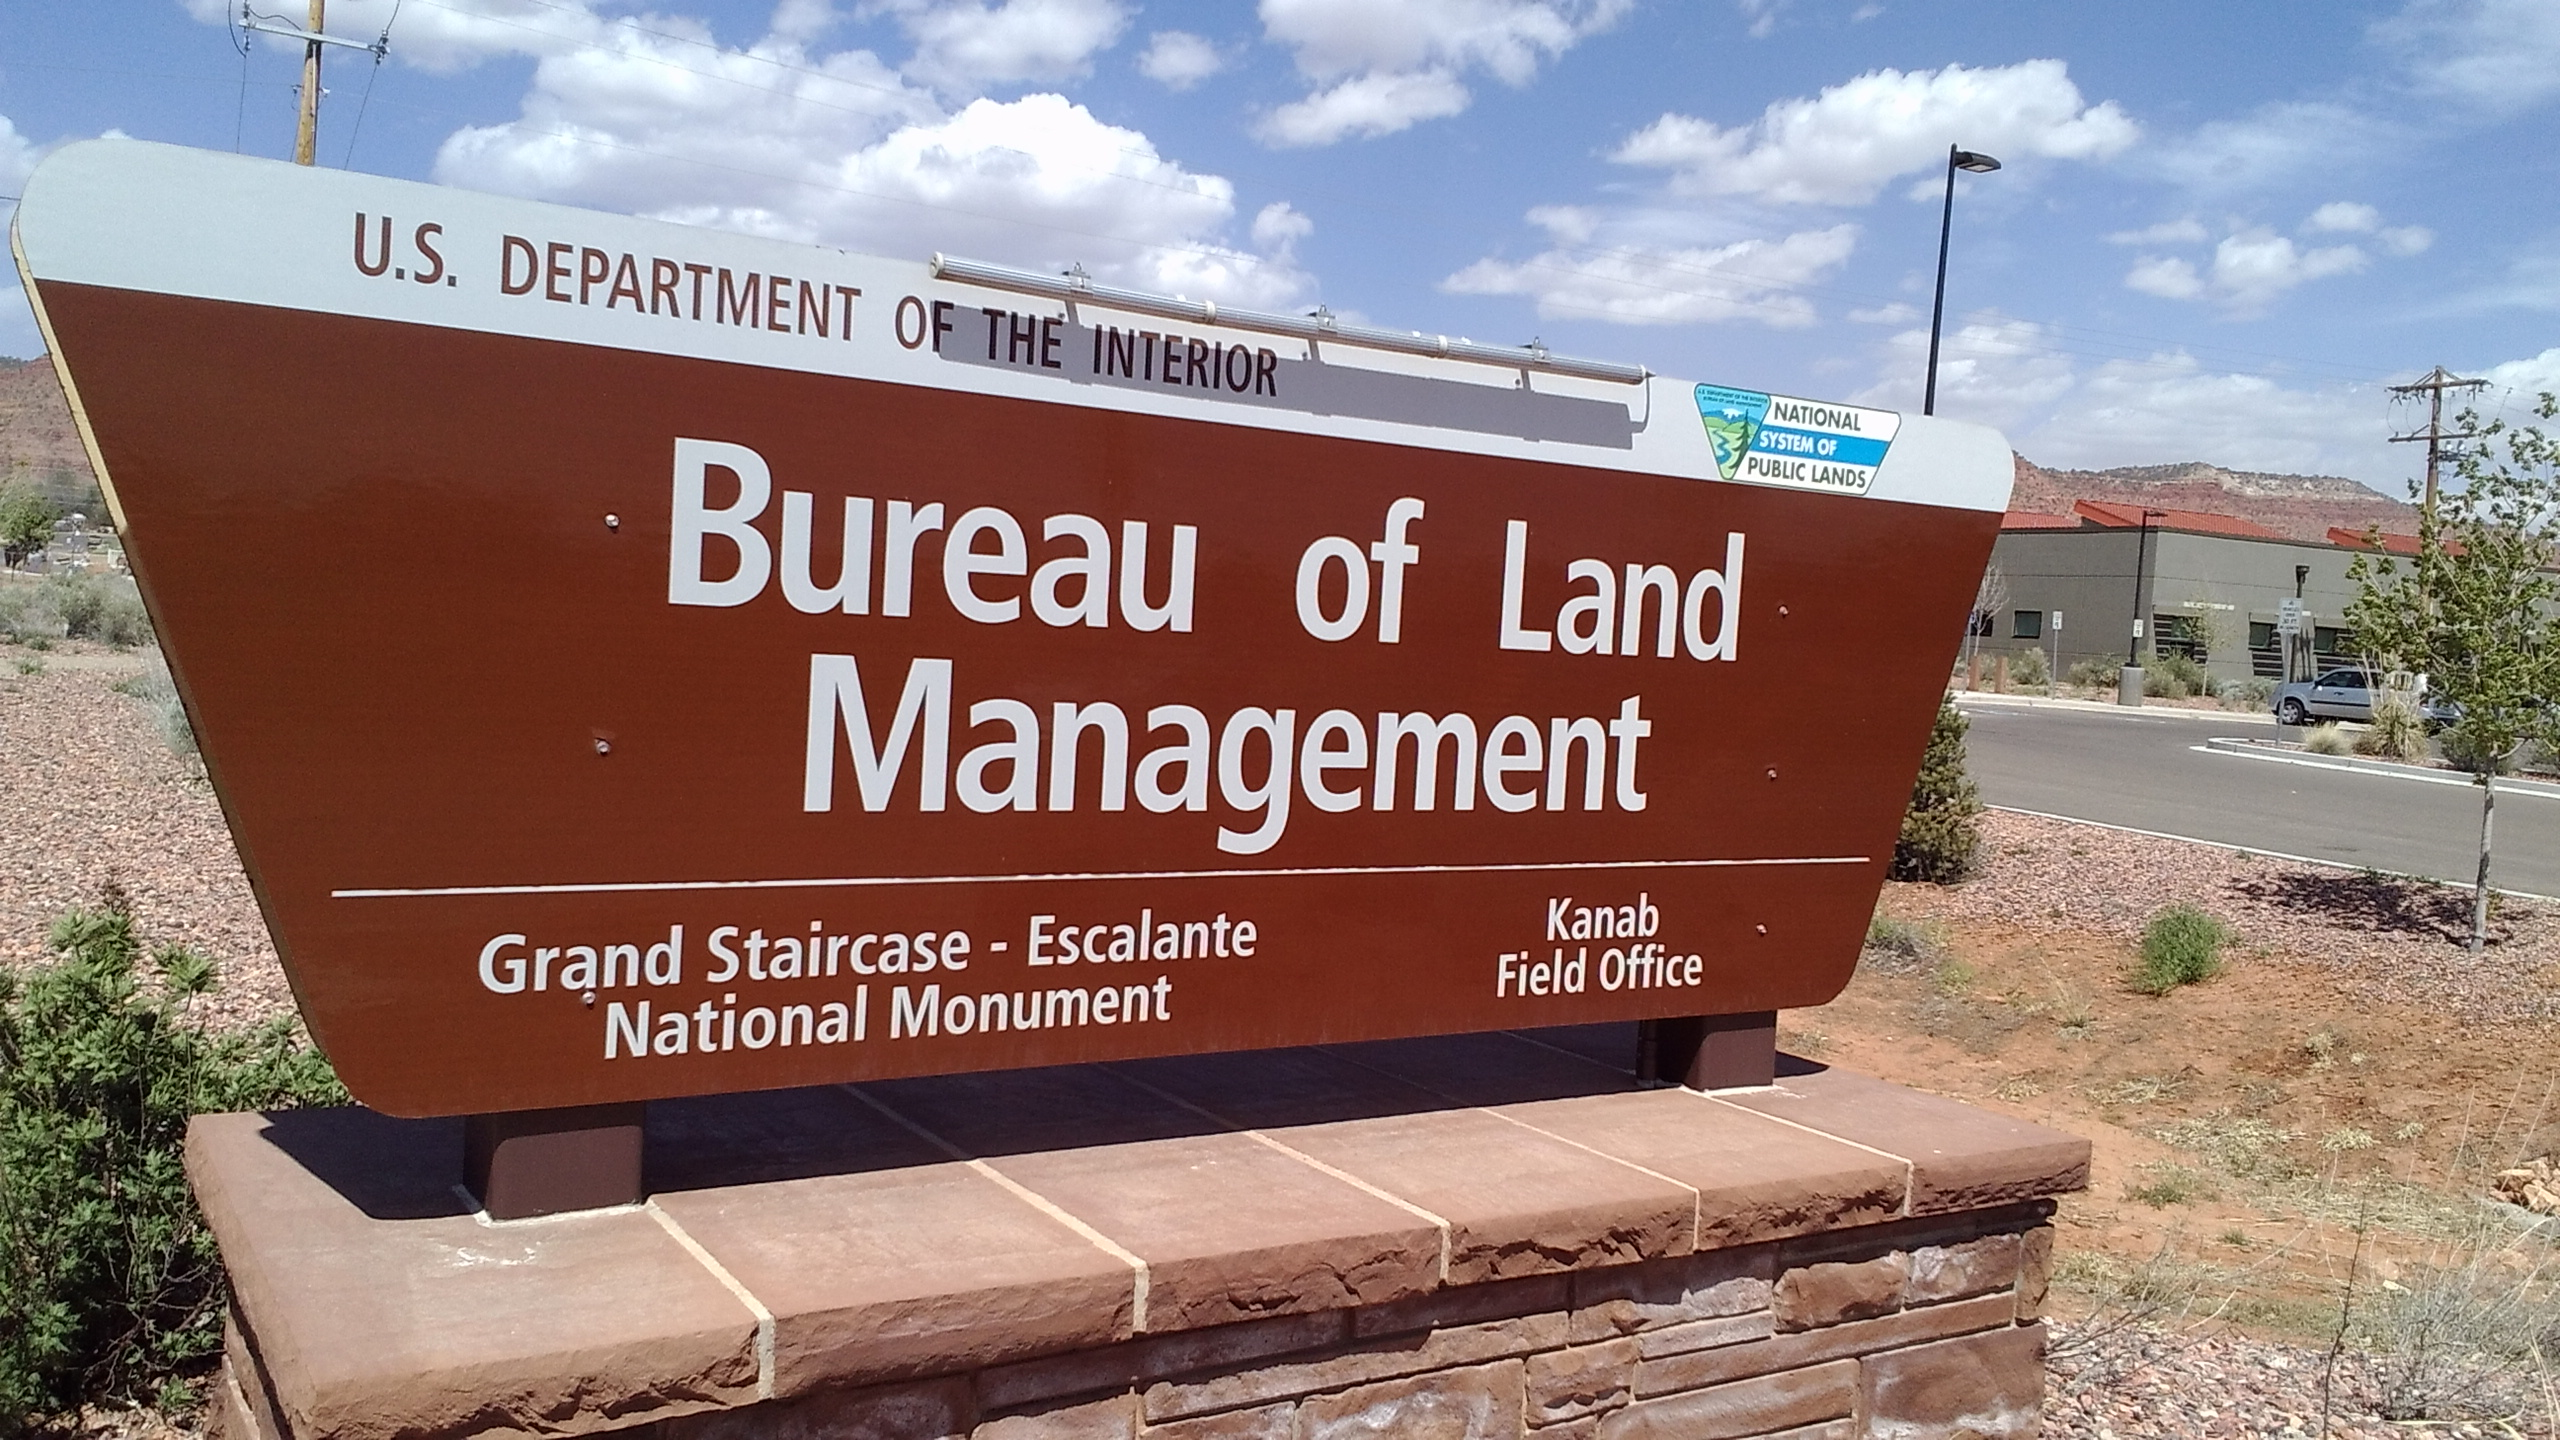 an analysis of the bureau of land management A federal district court in the district of columbia granted the bureau of land management's motion to transfer a case involving challenges to coal leases to wyoming, holding that the case could have been brought in wyoming and public interests weighed decisively in favor of transfer.